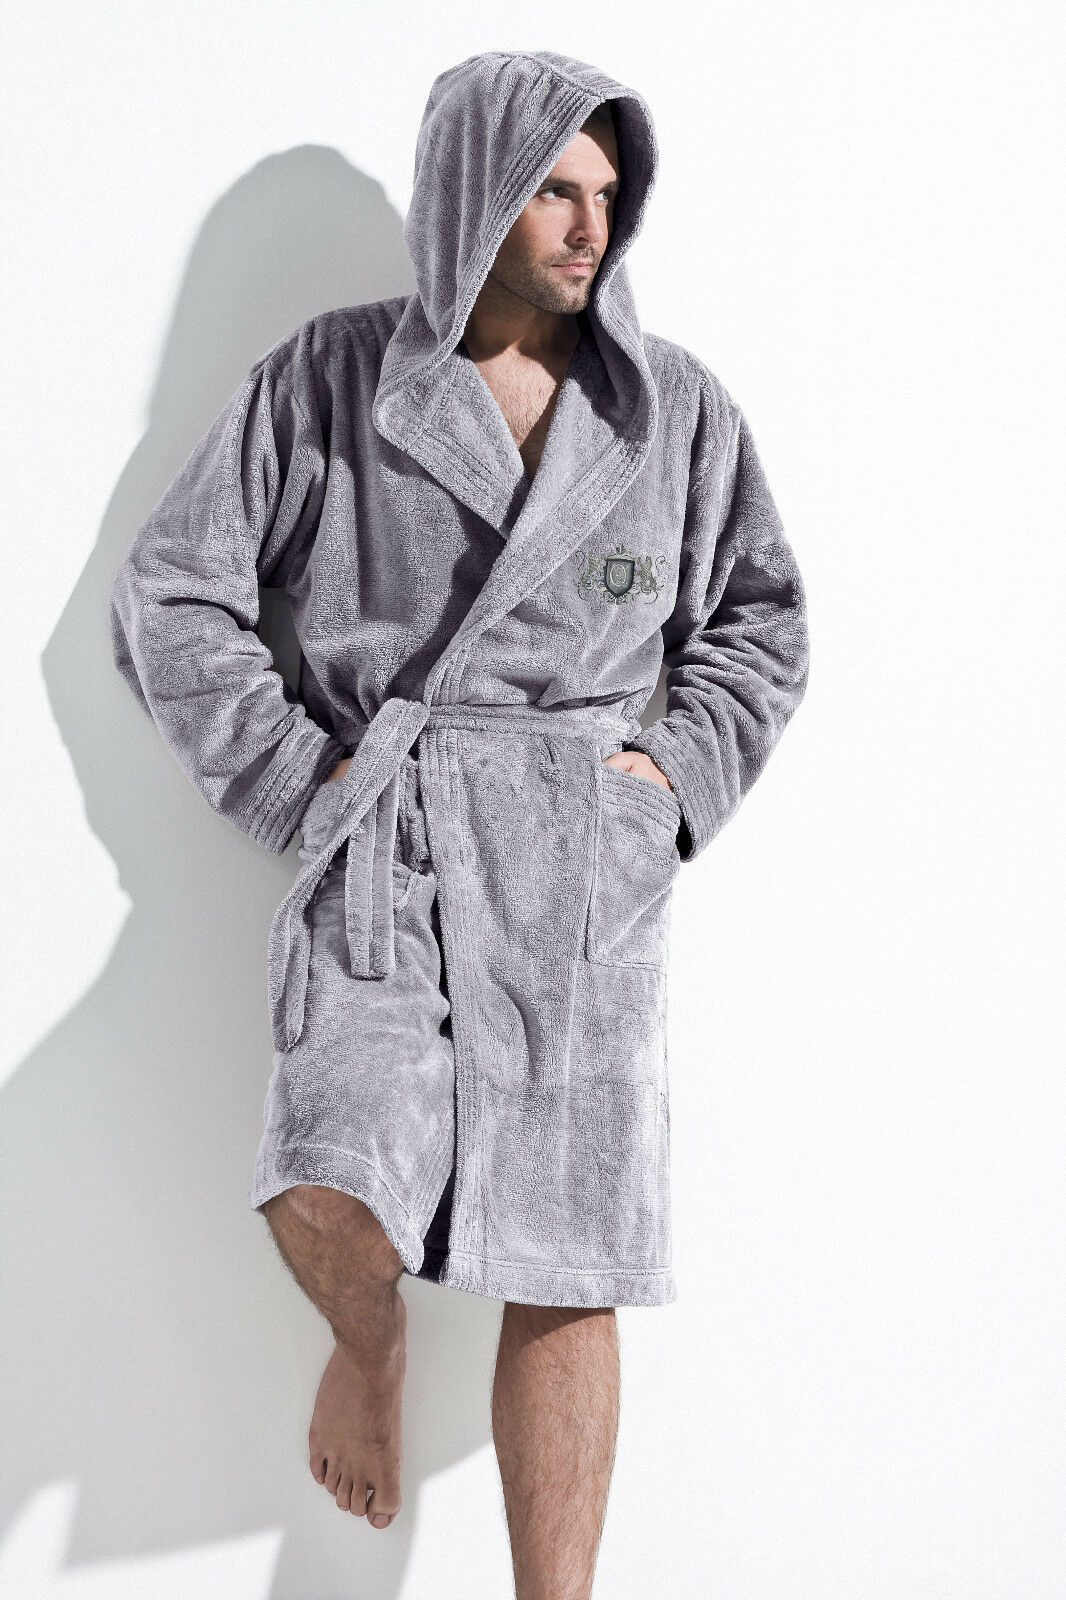 mens luxury dressing gown housecoat bathrobe with hood robe uk size m l xl xxl ebay. Black Bedroom Furniture Sets. Home Design Ideas